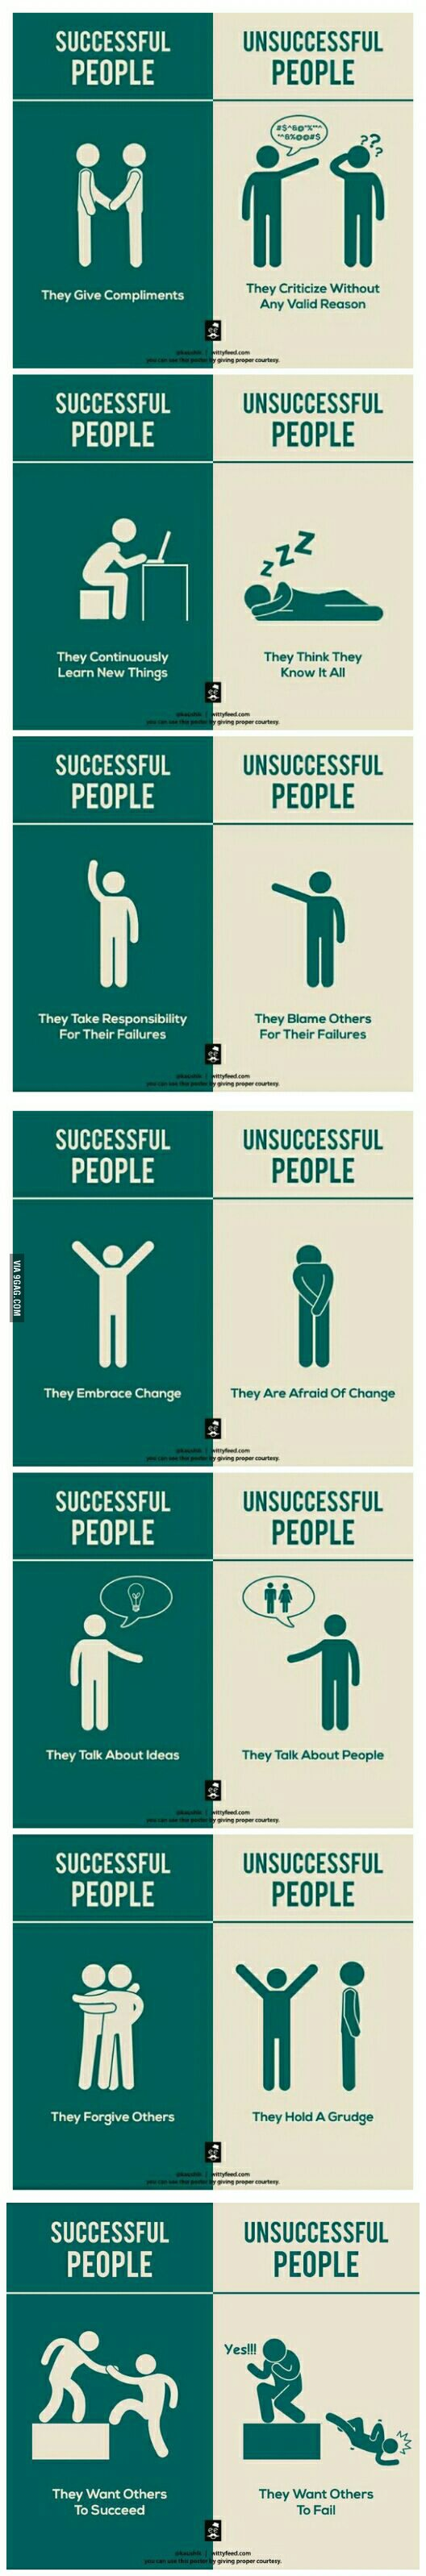 Graphics explain succeed